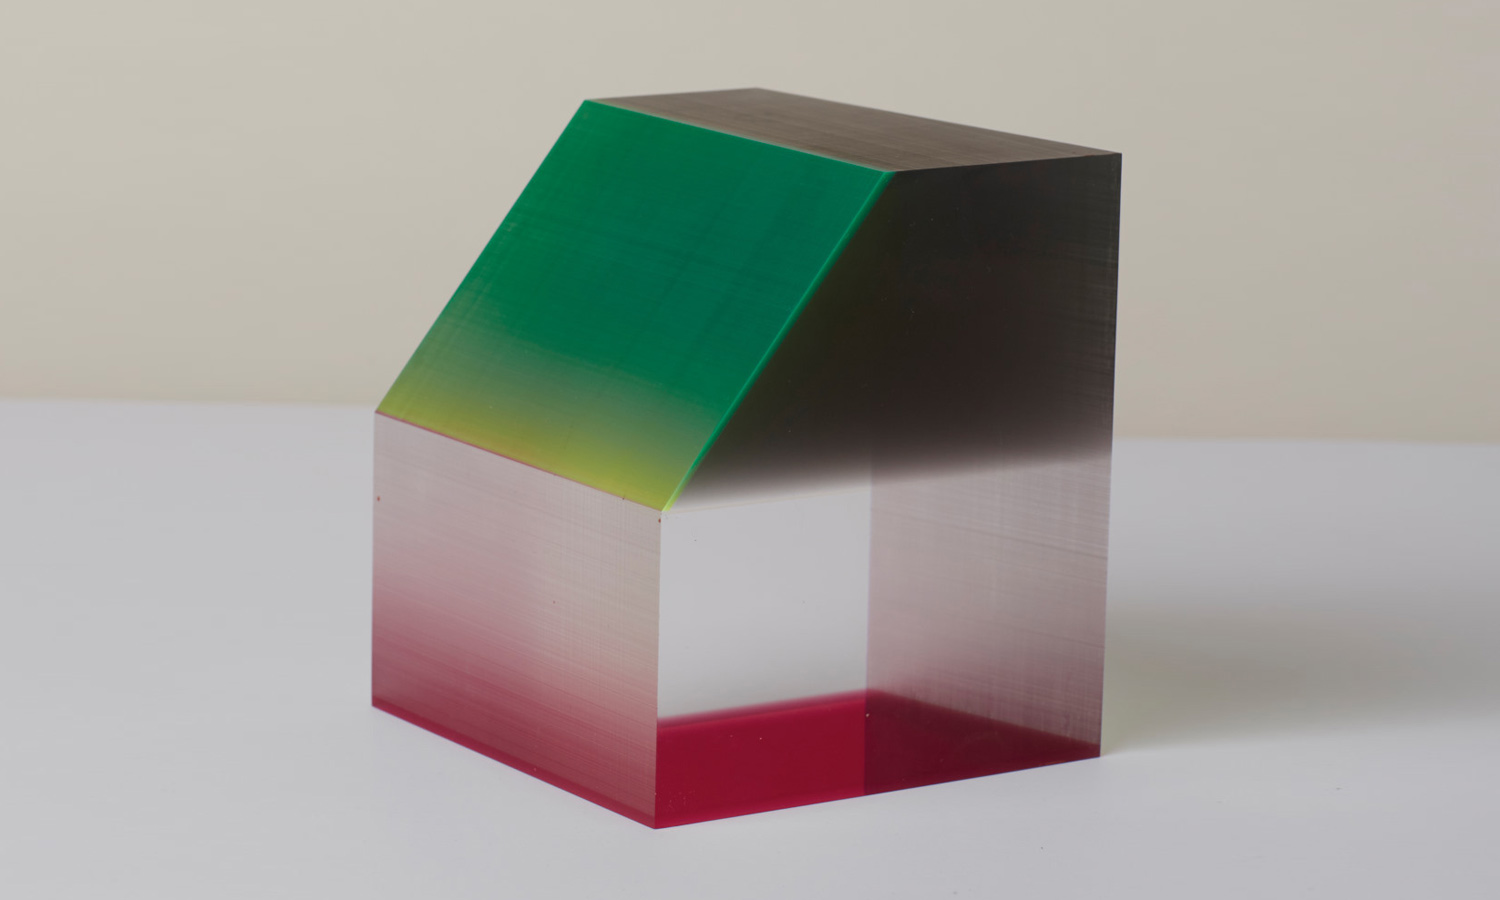 Phillip-Low-Prism-Sculpture-feature